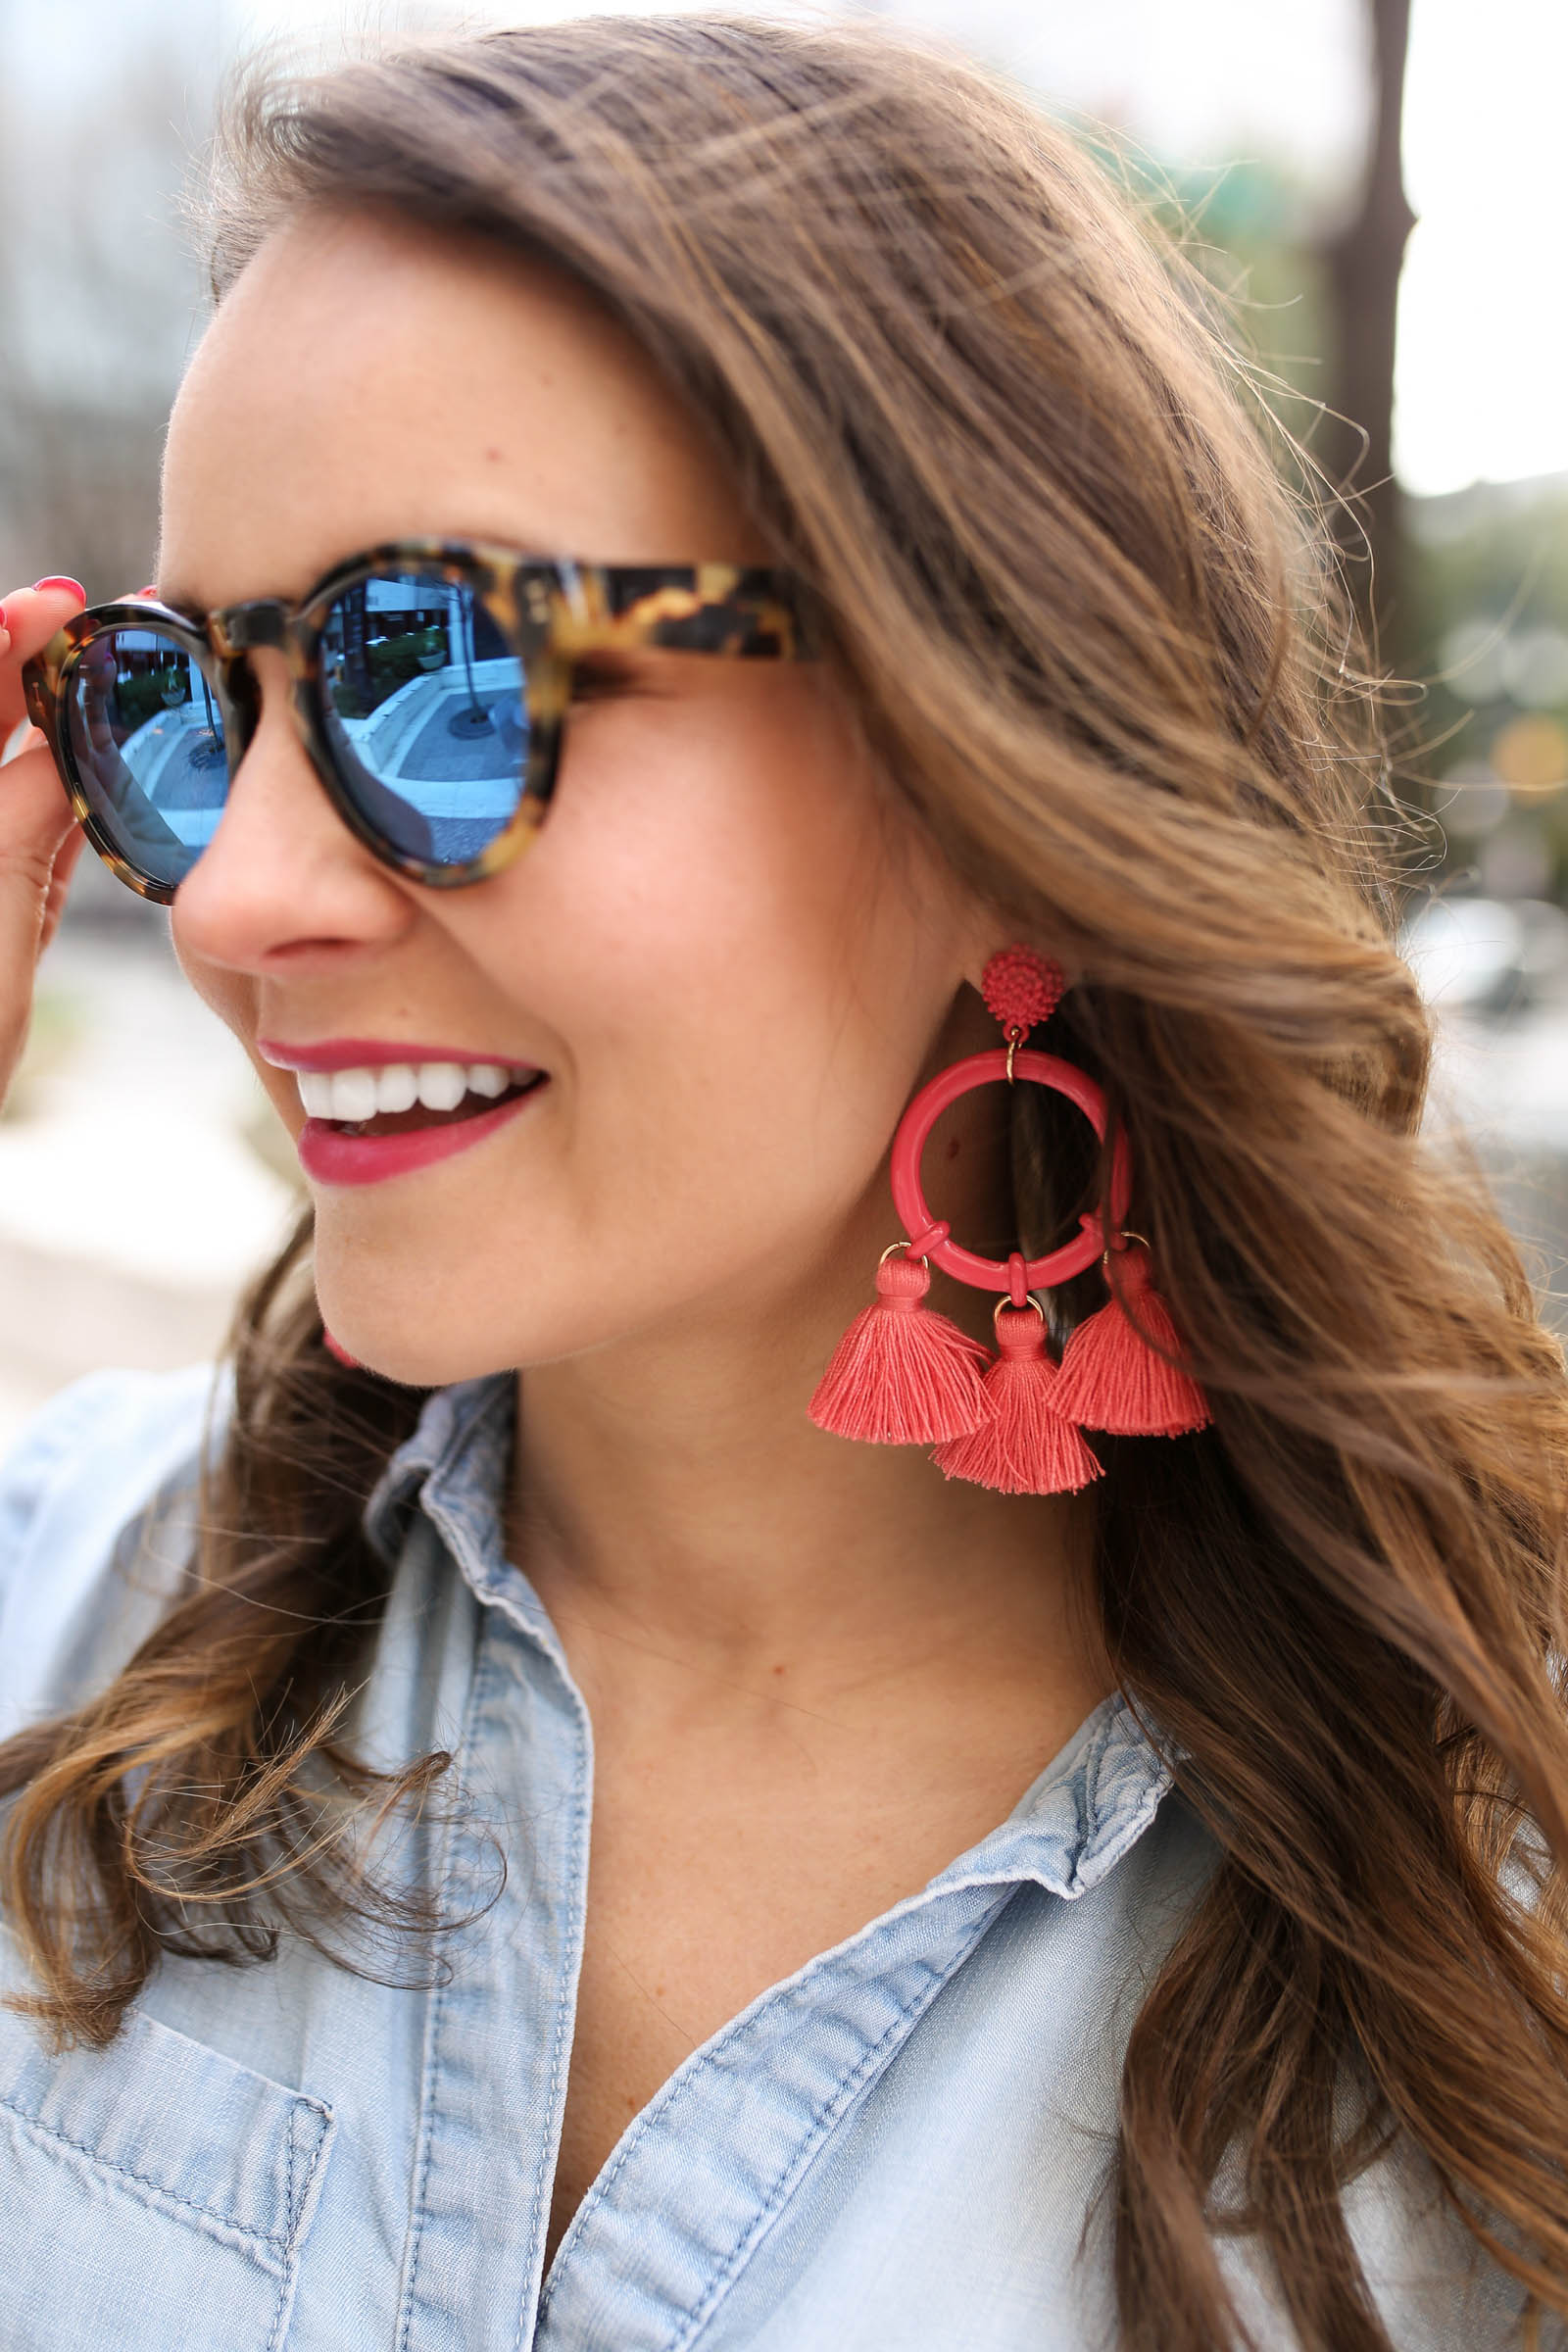 SUGARFIX by BaubleBar Mixed Media Hoop Earrings with Tassels, Illesteva Leonard sunglasses, coral tassel earrings